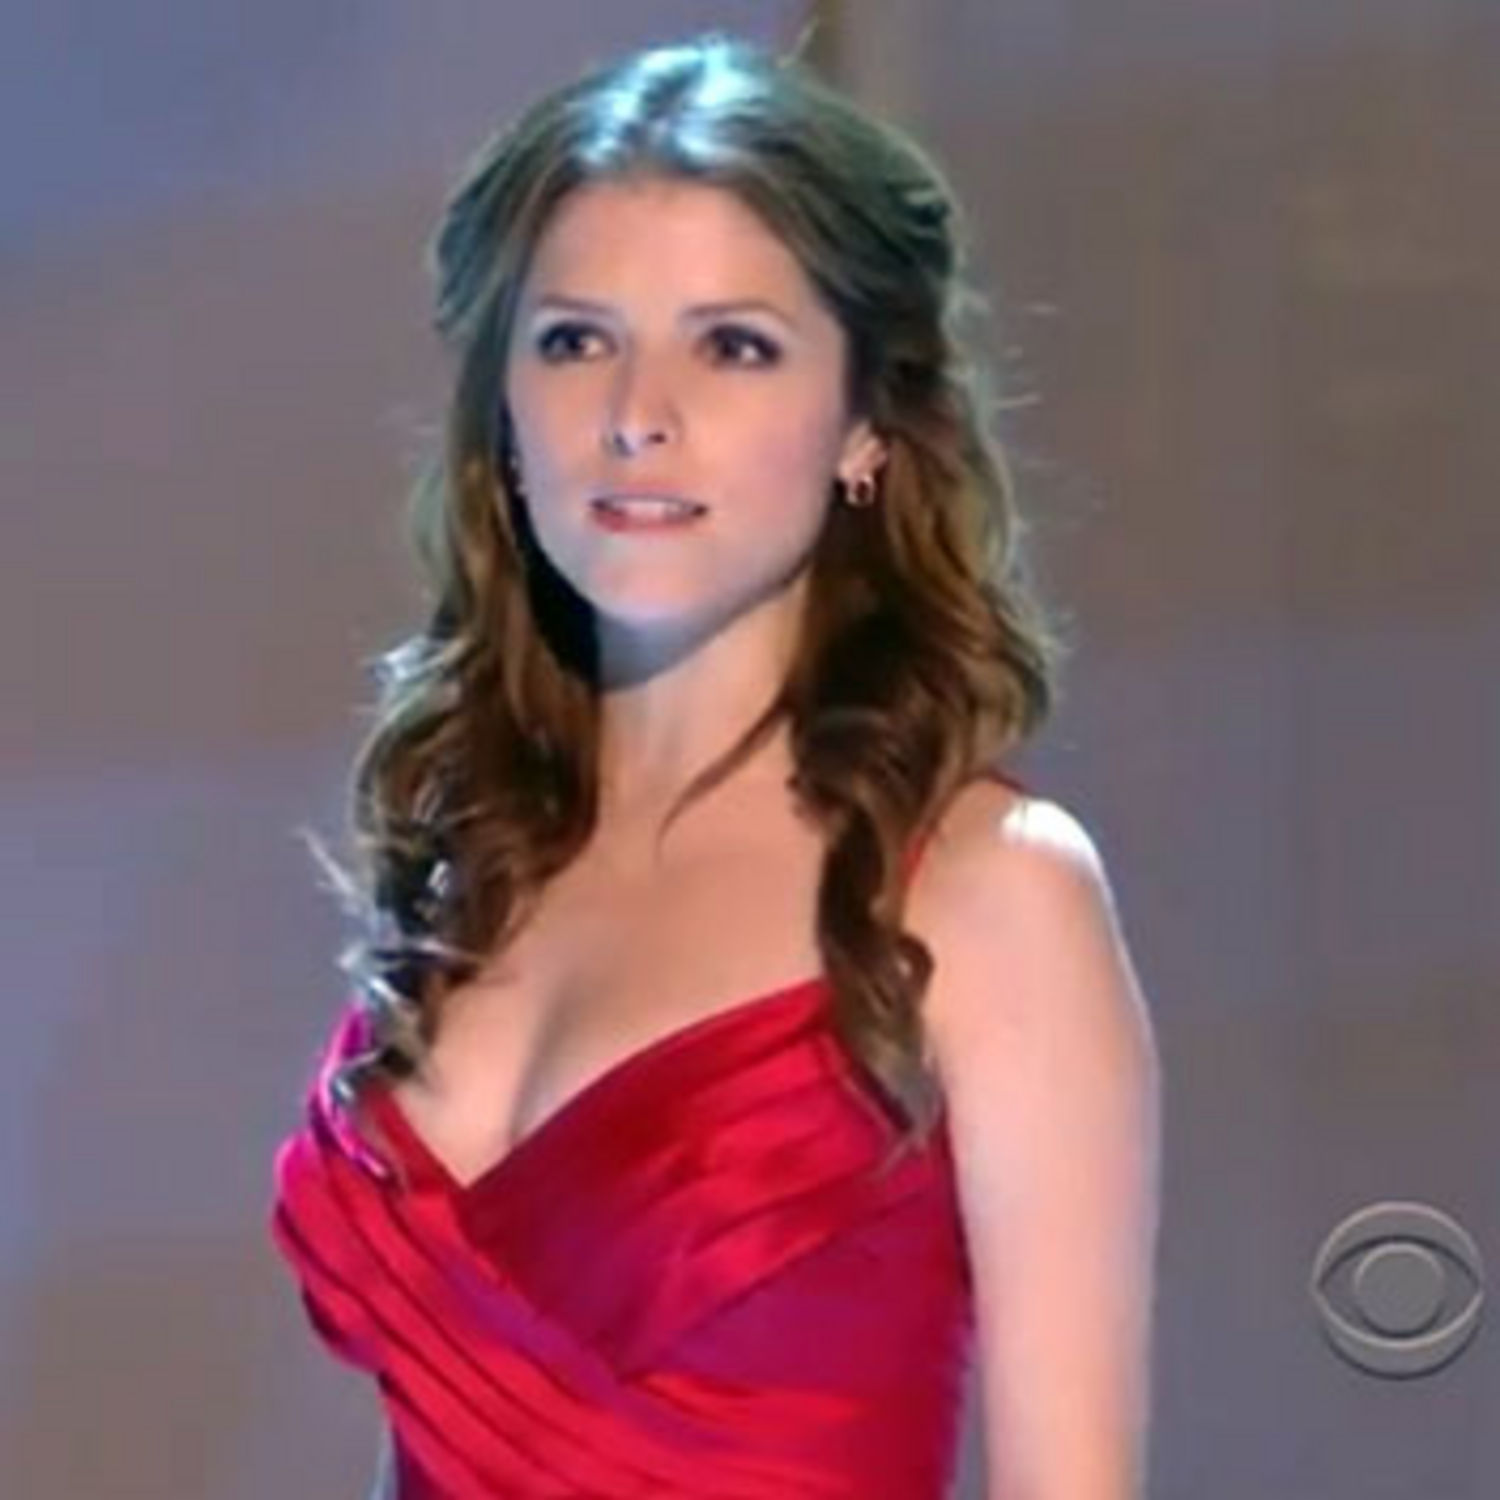 Anna Kendrick Iphone Sexy Wallpapers